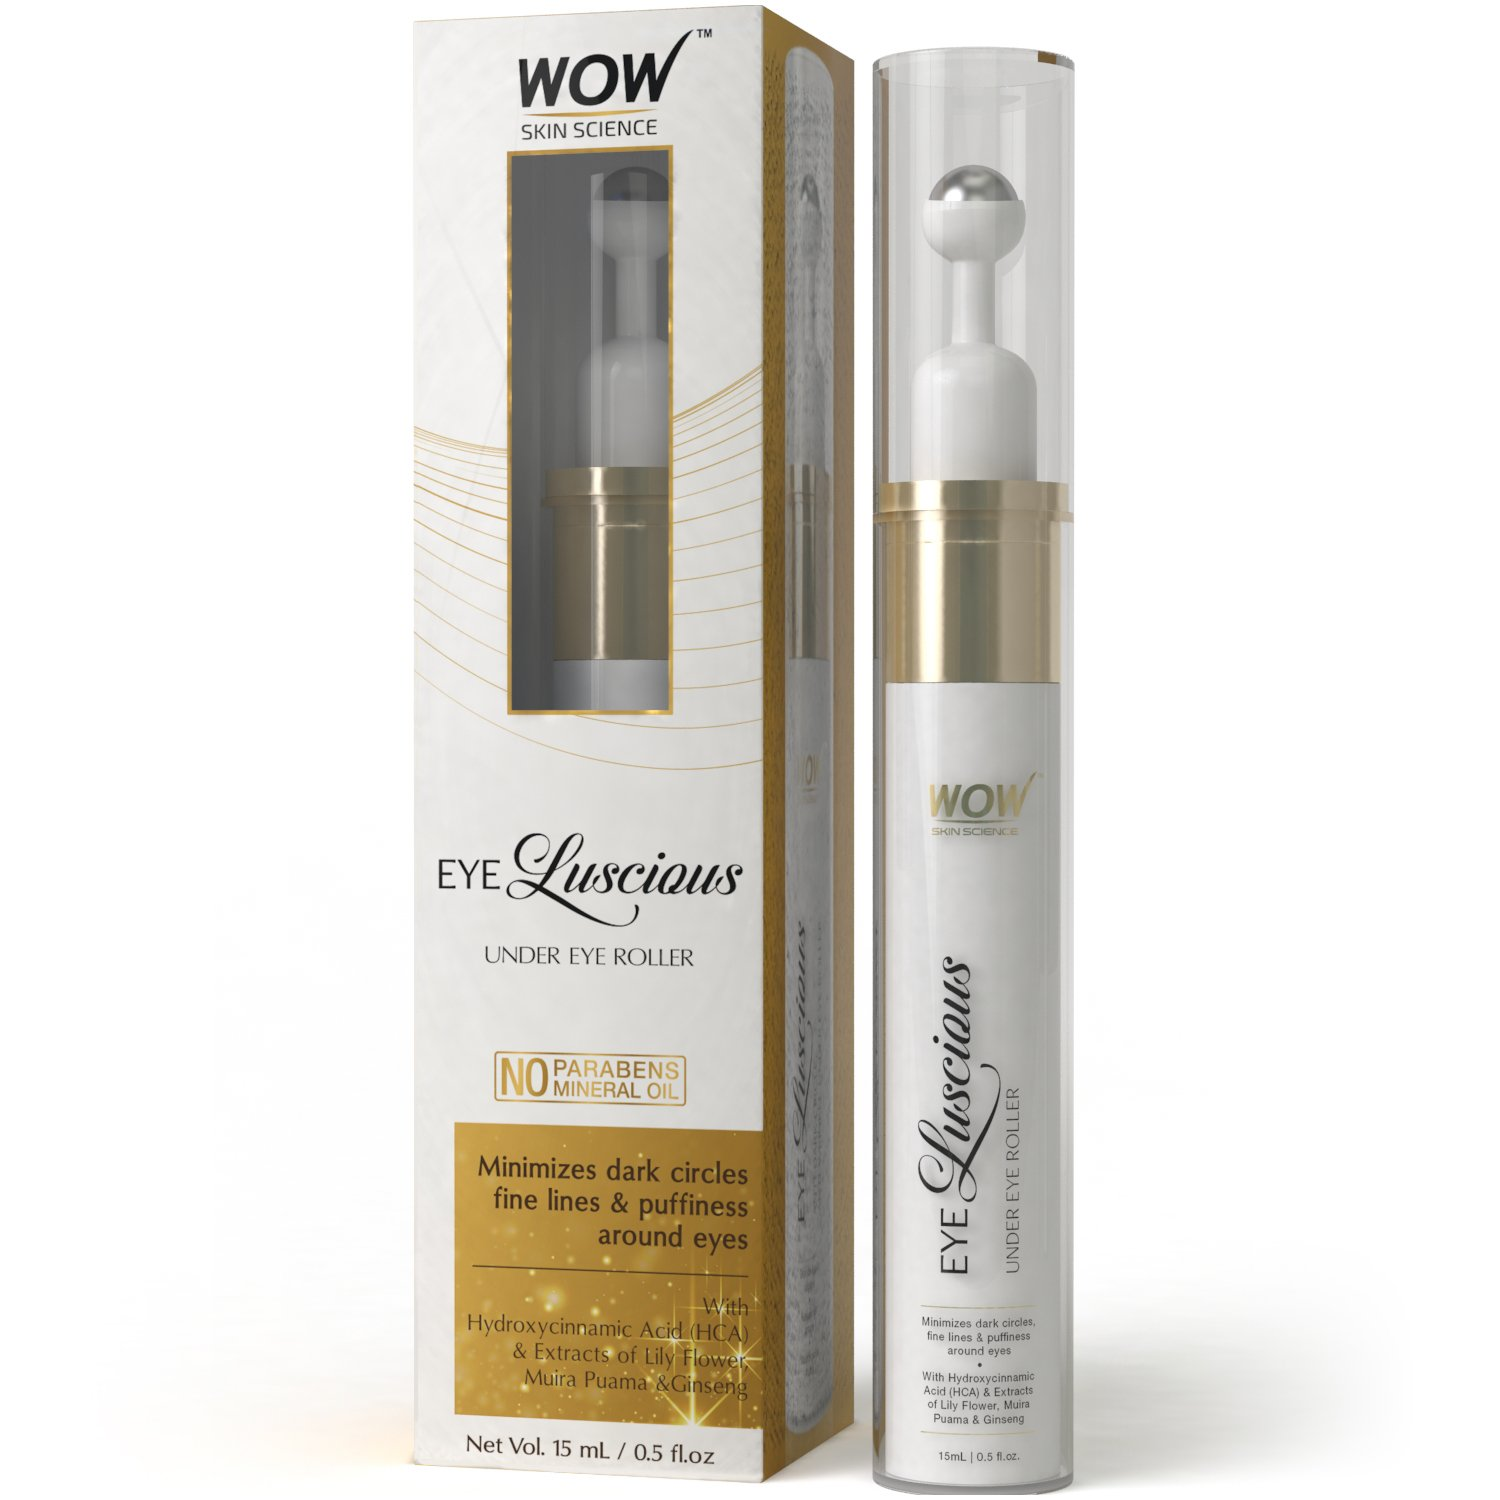 WOW Eye Luscious Under Eye Roller, 15ml